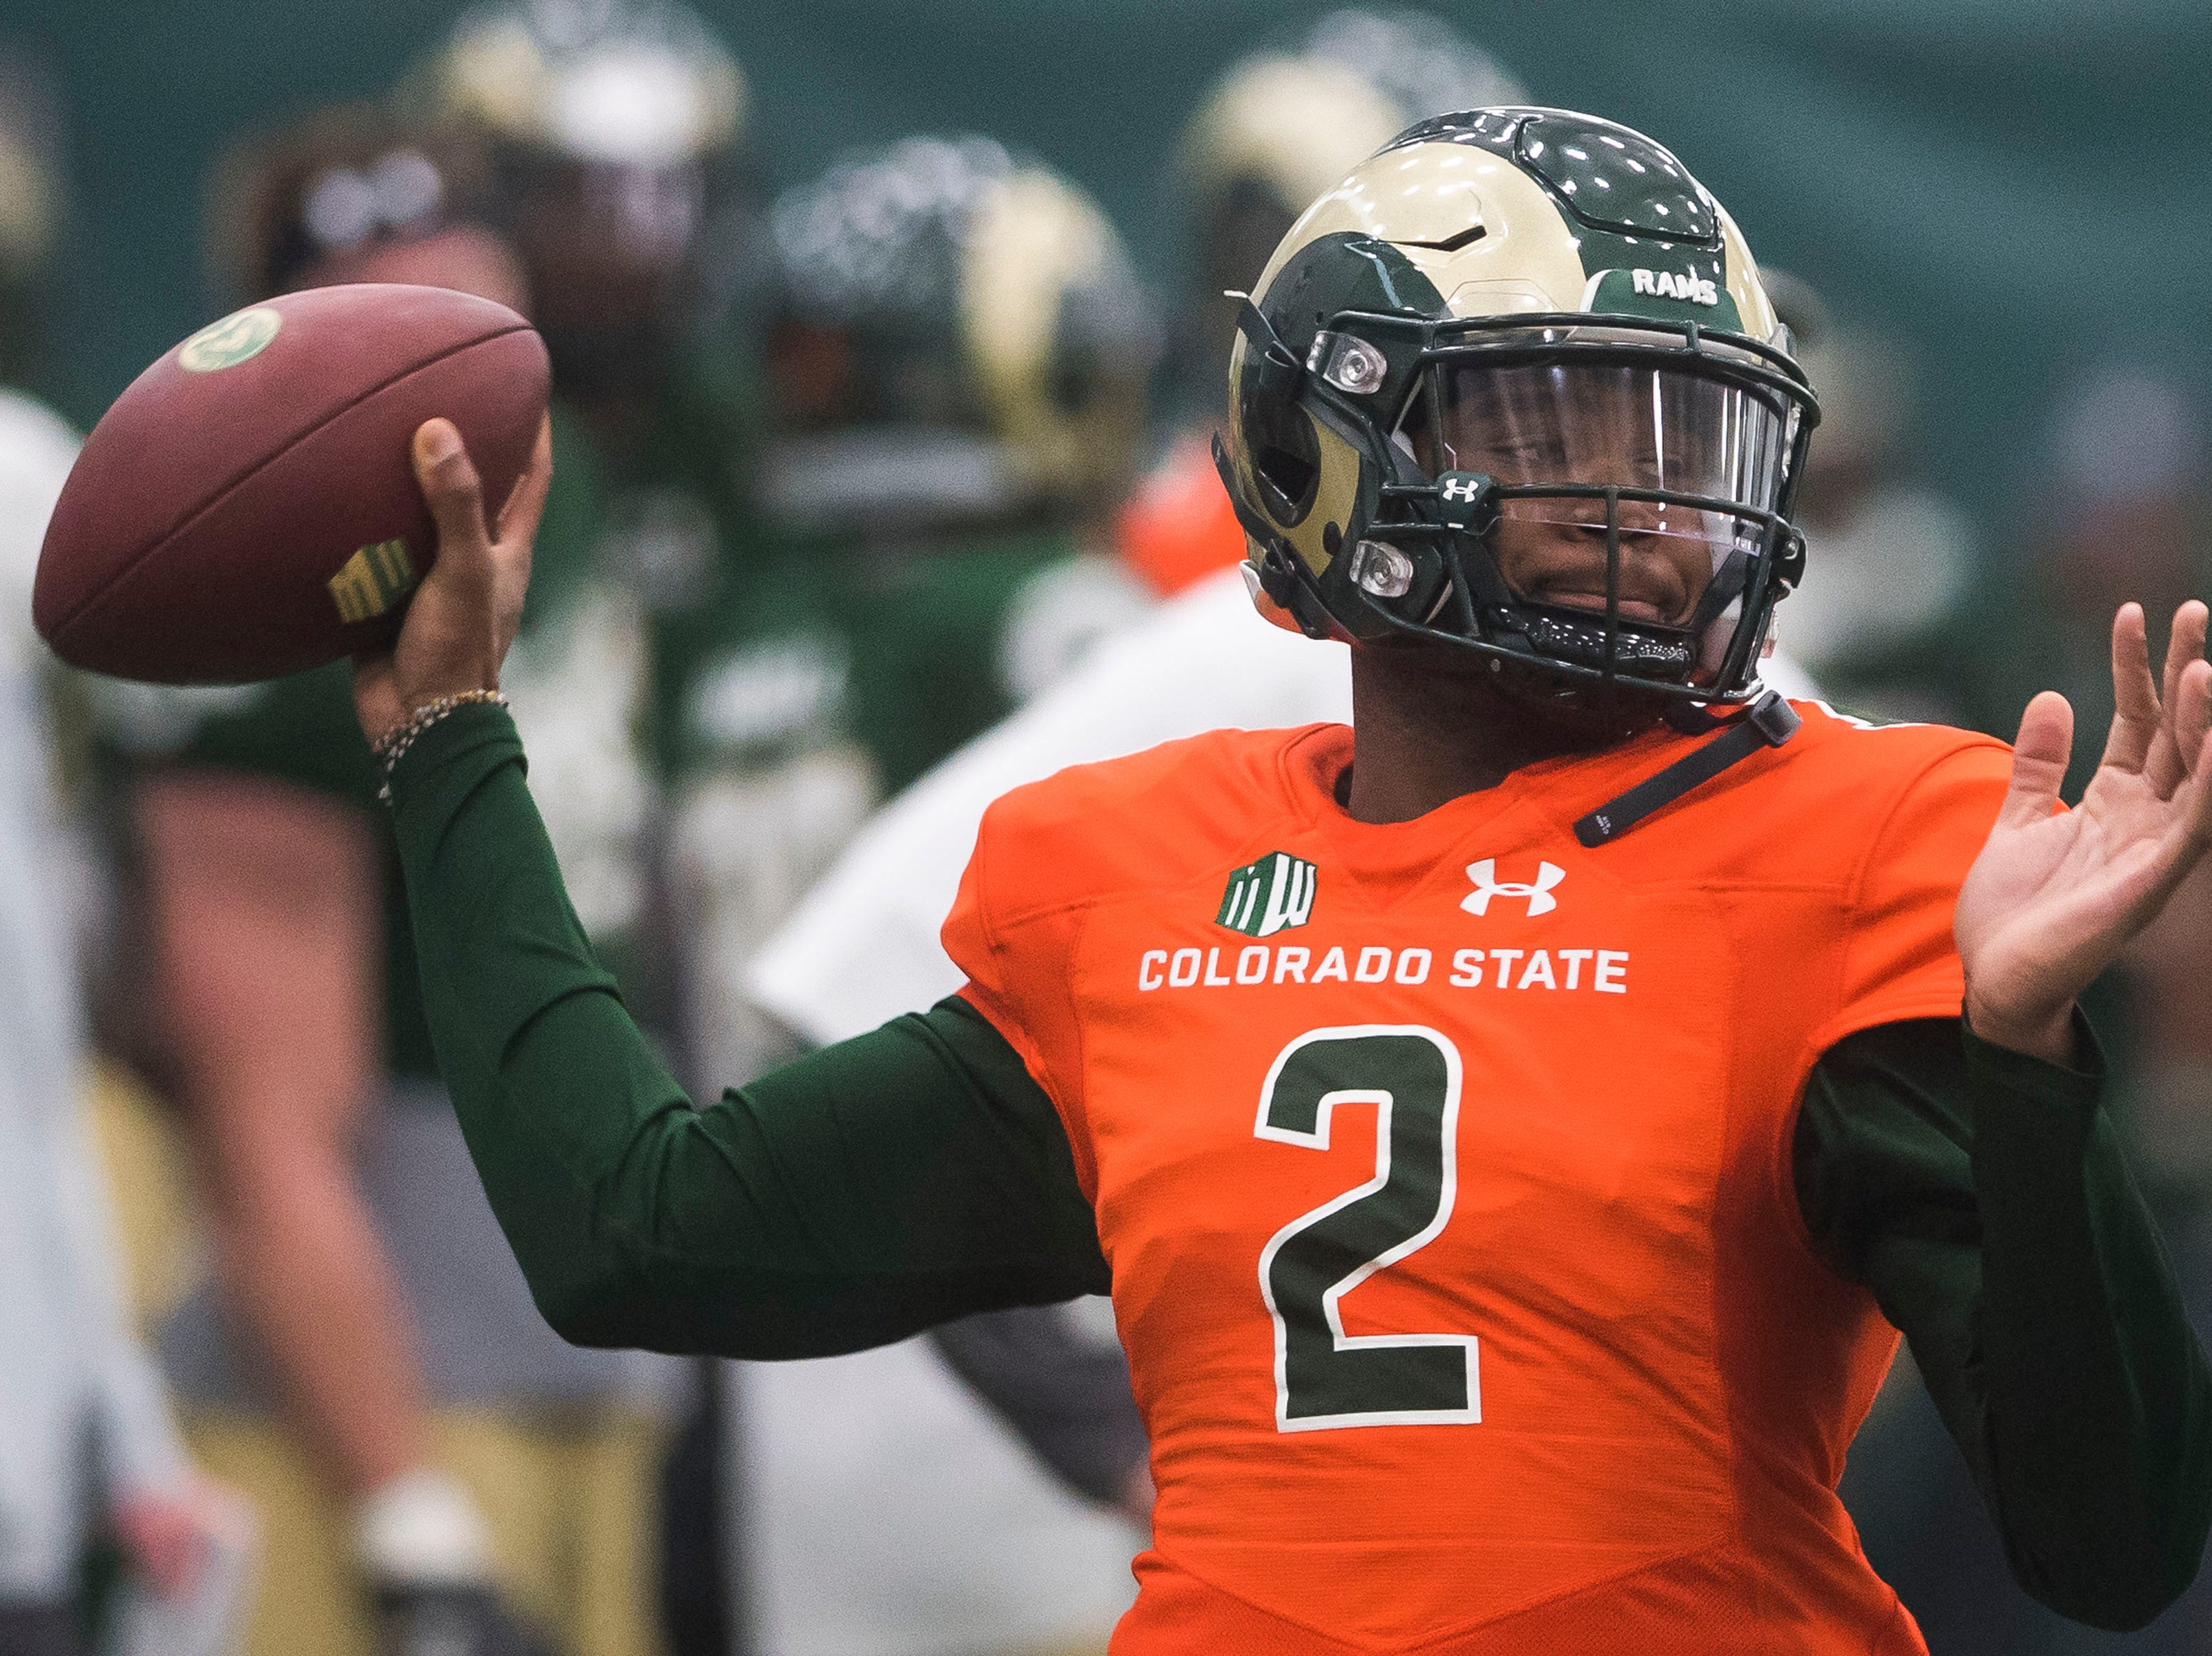 CSU sophomore quarterback Justice McCoy (2) throws during drills preceding CSU's Spring game on Thursday, March 14, 2019, at their indoor practice facility in Fort Collins, Colo.